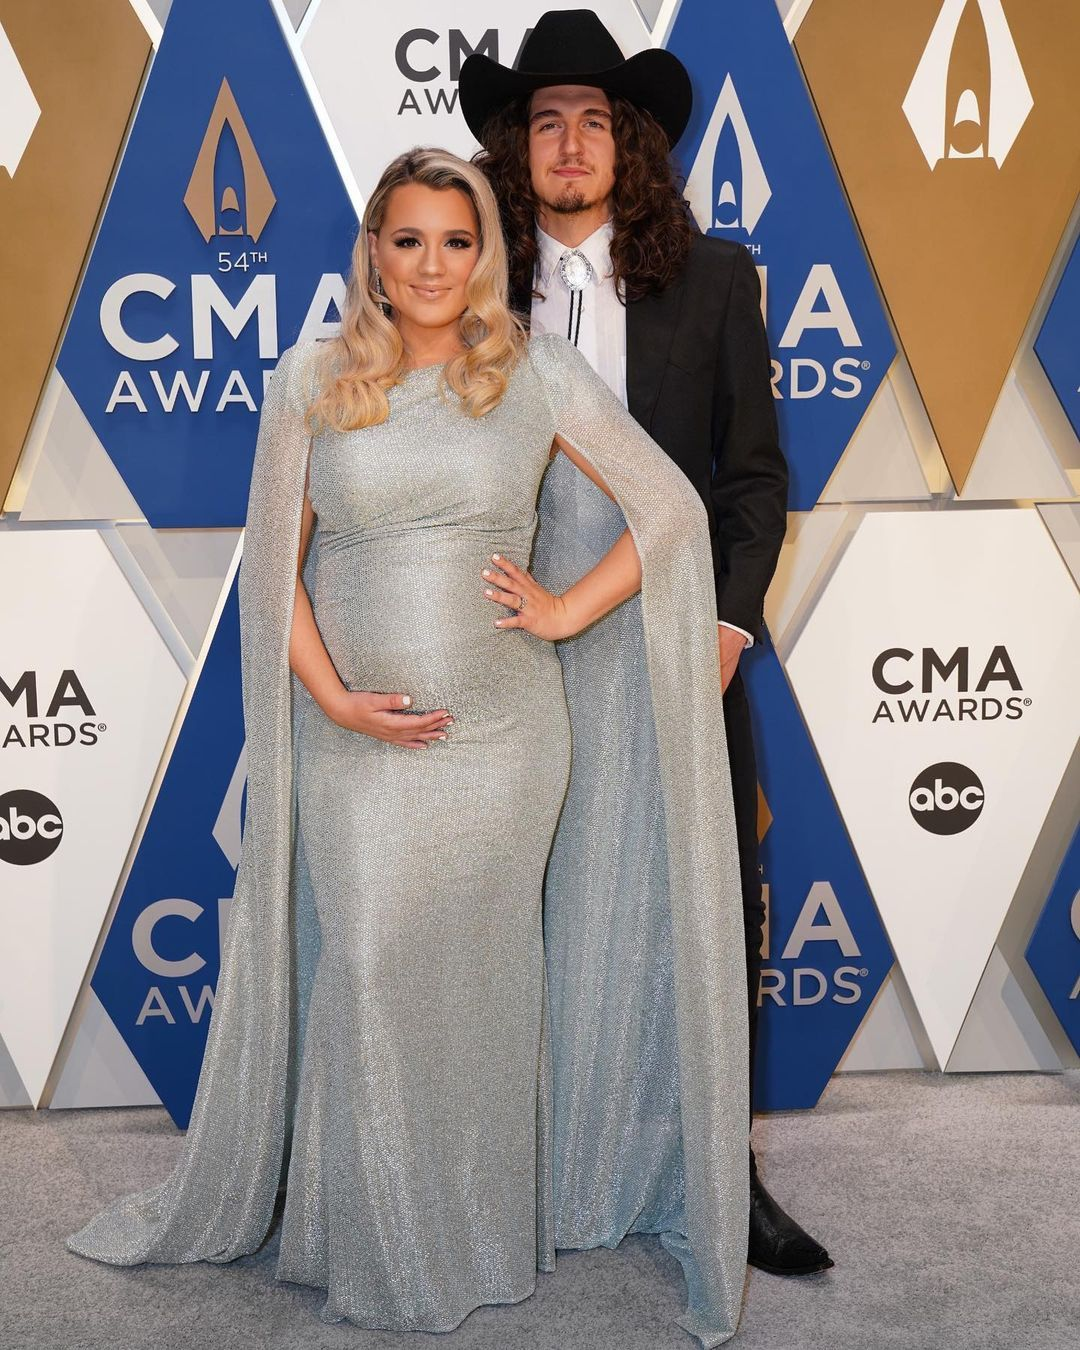 Gabby Barrett On Instagram The 3 Of Us What An Honor To Be Apart Of The Cma Awards This Year Thank Y All So Much First Baby Cade Gabby